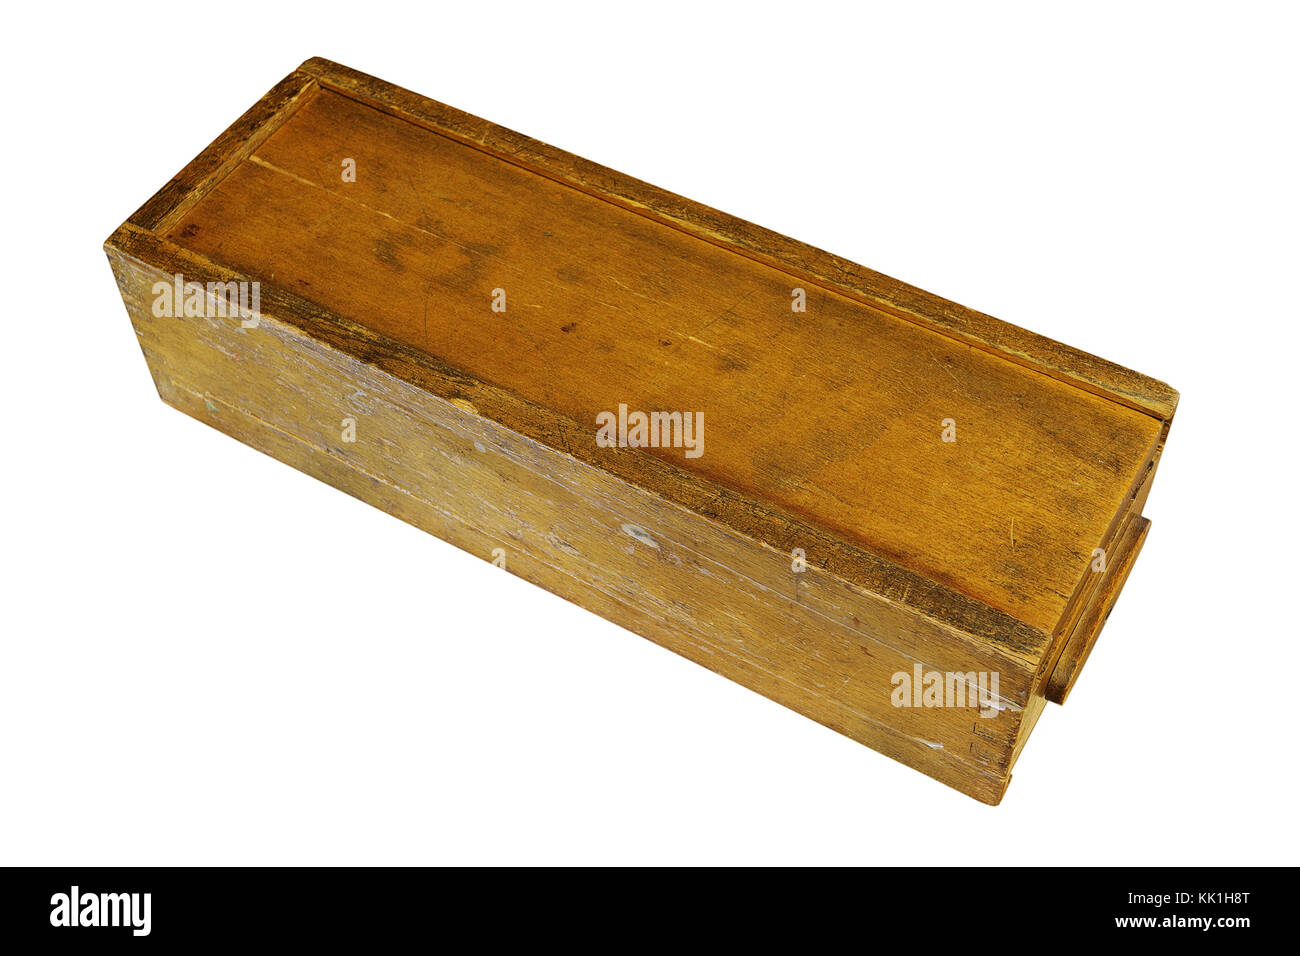 vintage weathered rummy wooden box isolated over white background - Stock Image